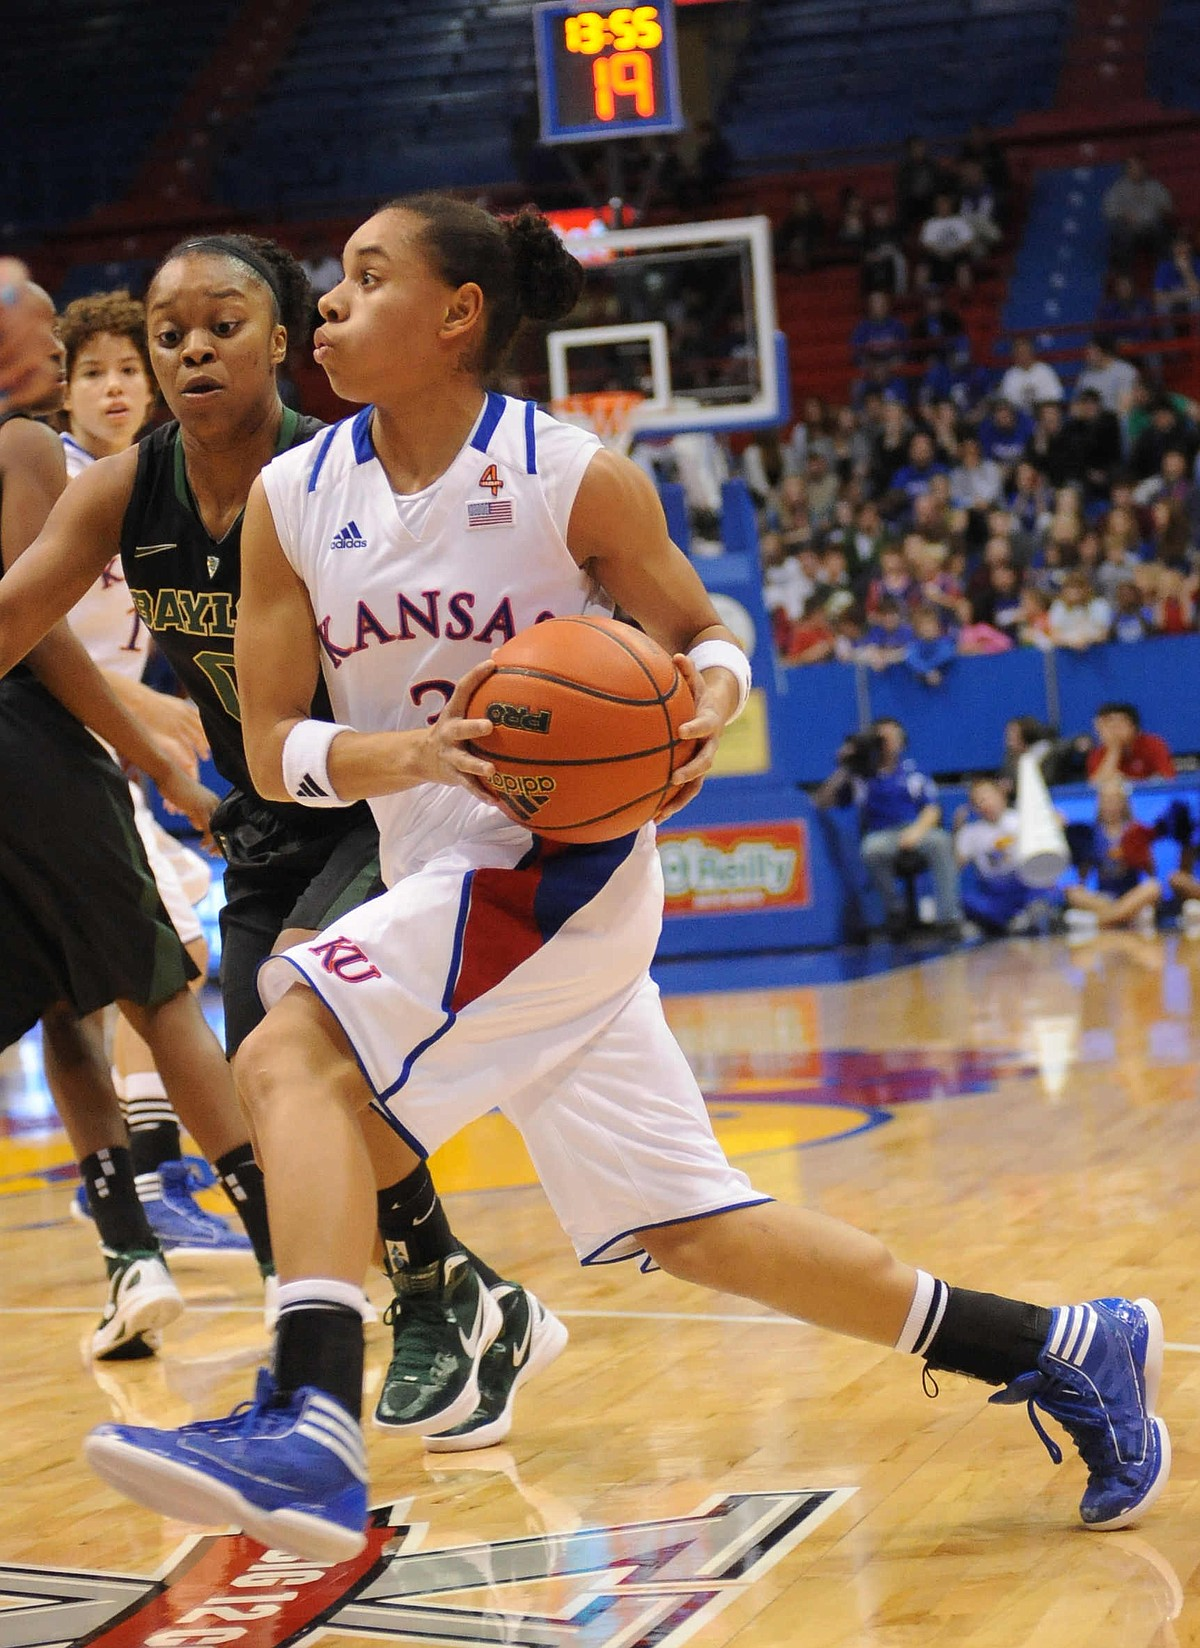 KU women's basketball vs. Baylor / LJWorld.com